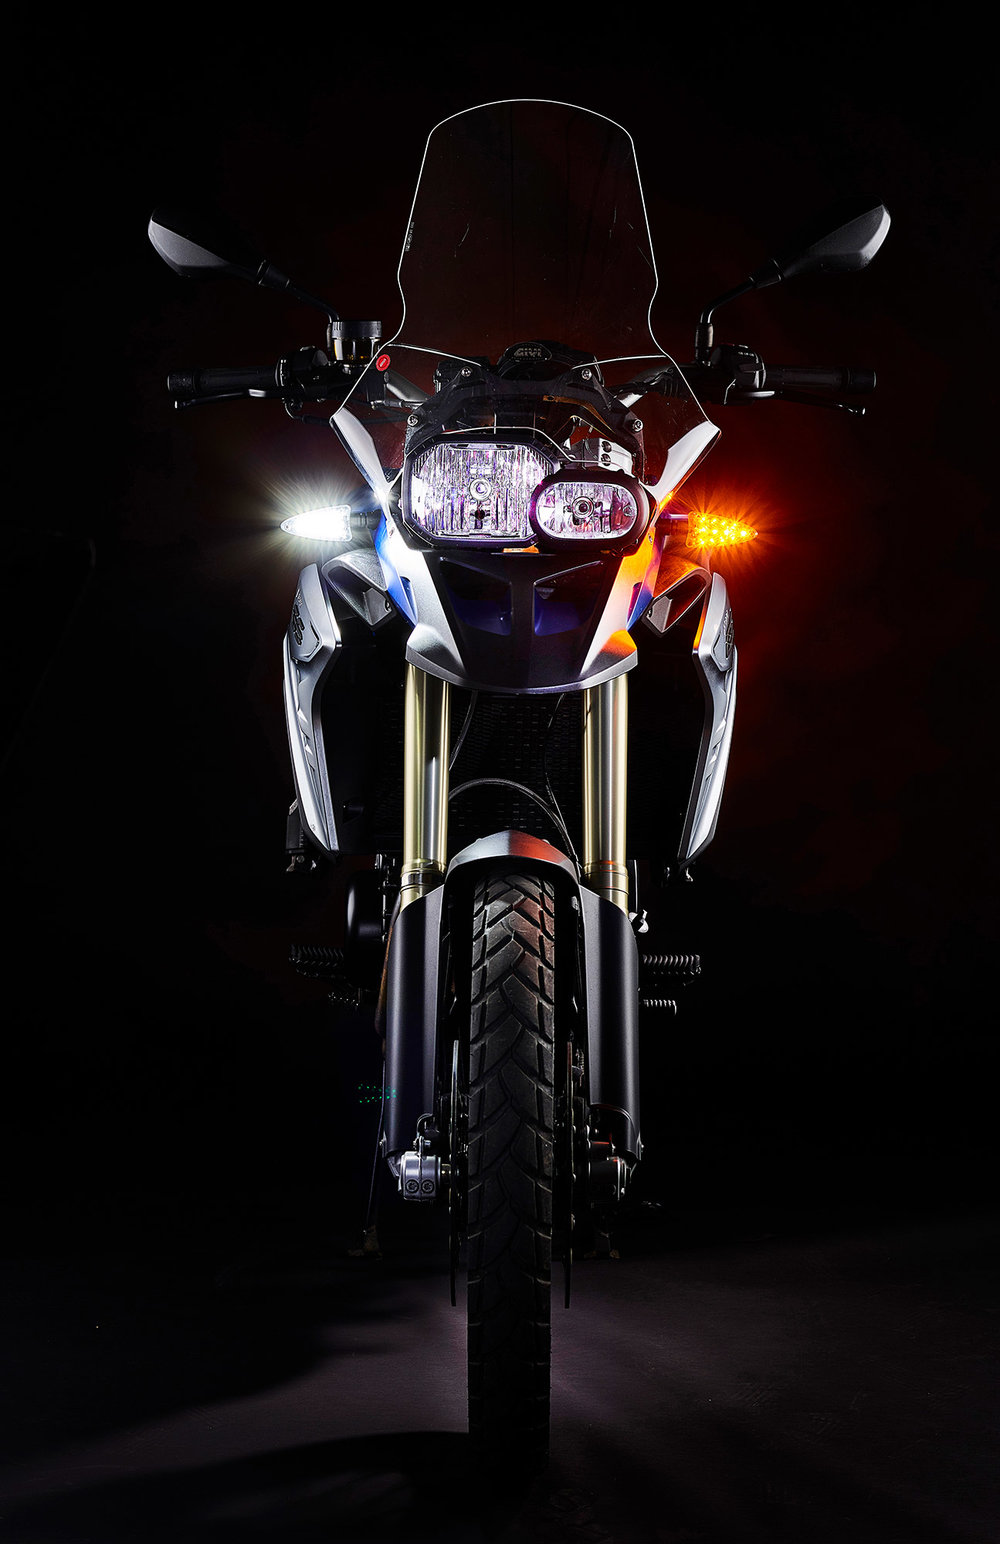 Ultrabrights 2-in-1 LED driving light/turn signal upgrades - For newer BMW motorcycles